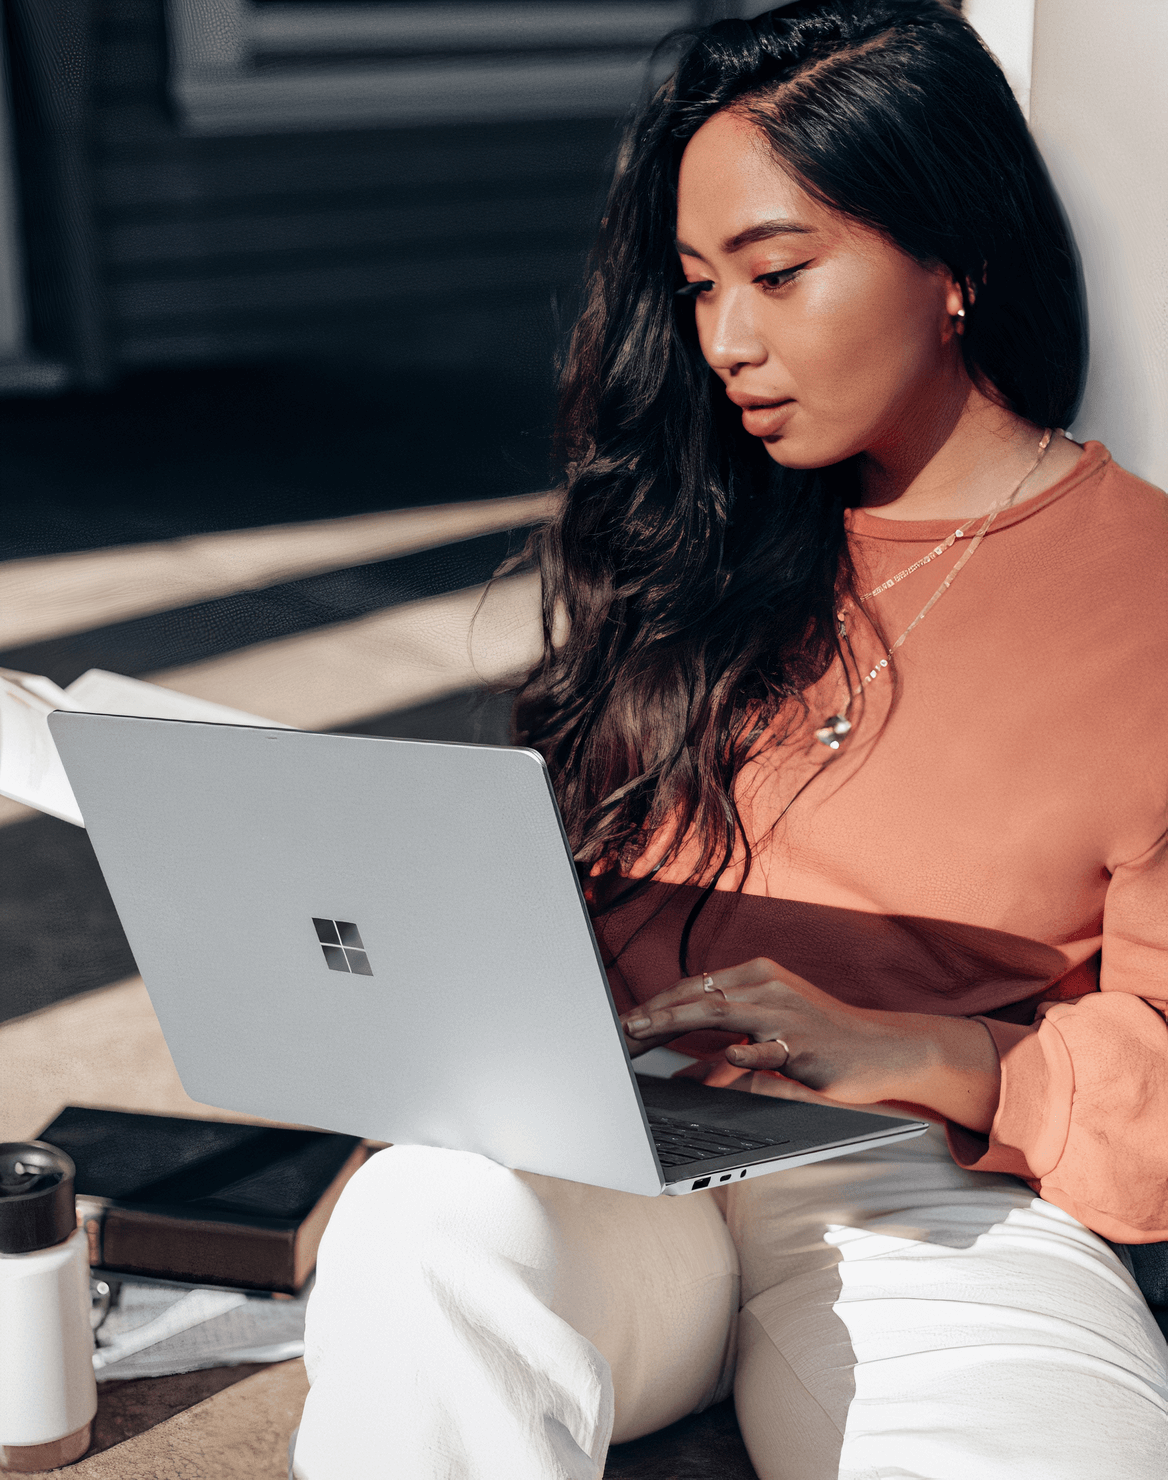 An image of a girl looking at her laptop